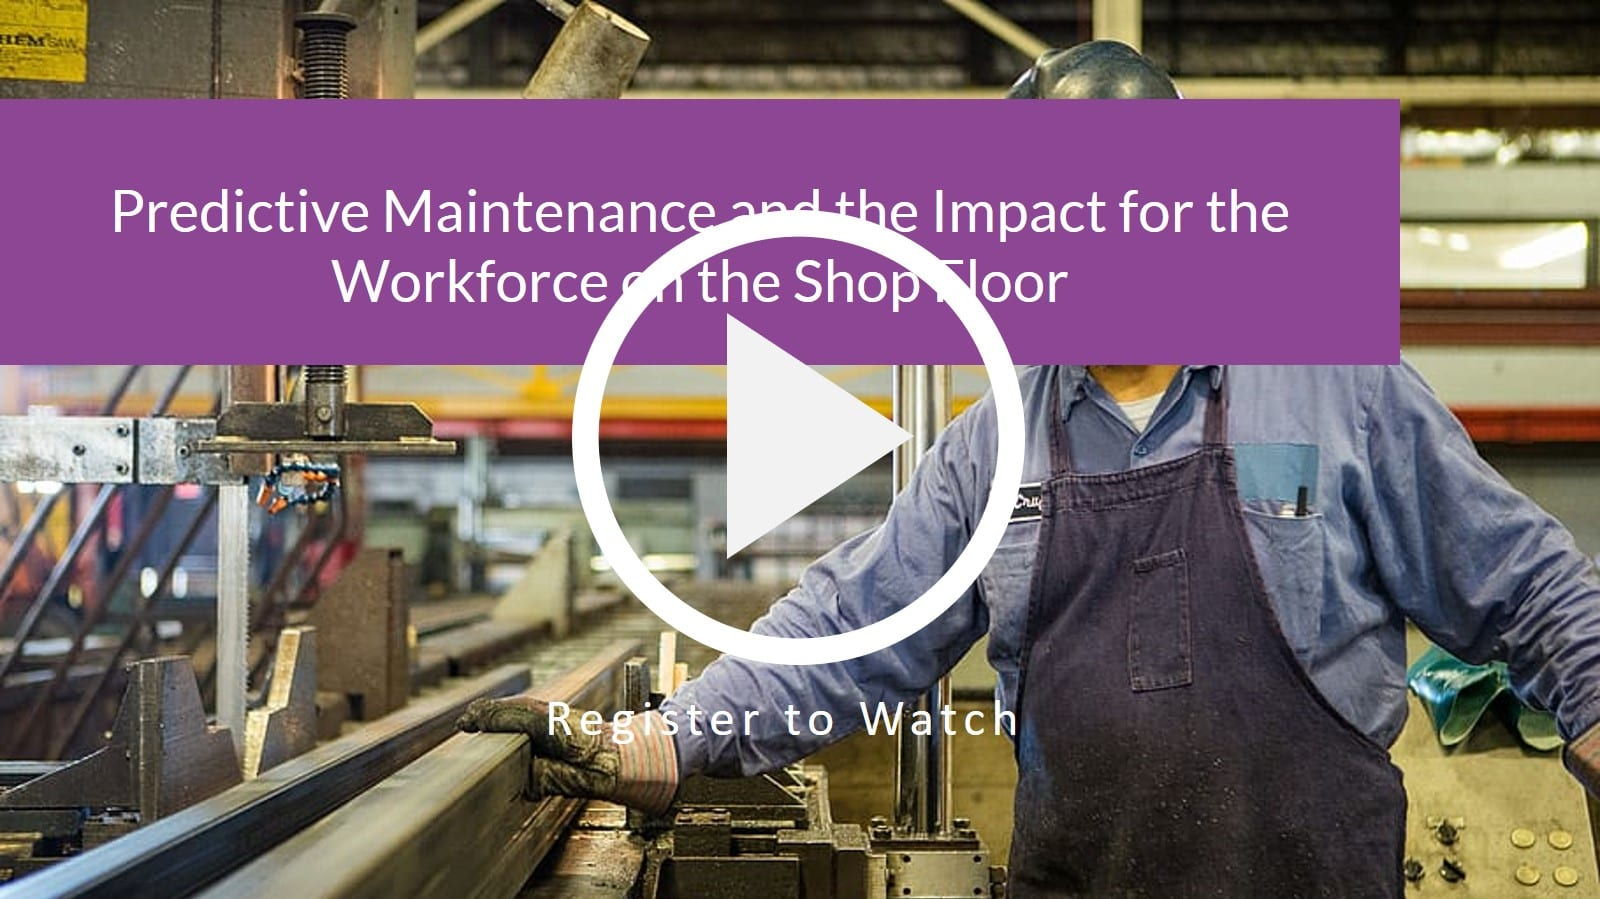 Predictive Maintenance and the Impact for the Workforce on the Shop Floor